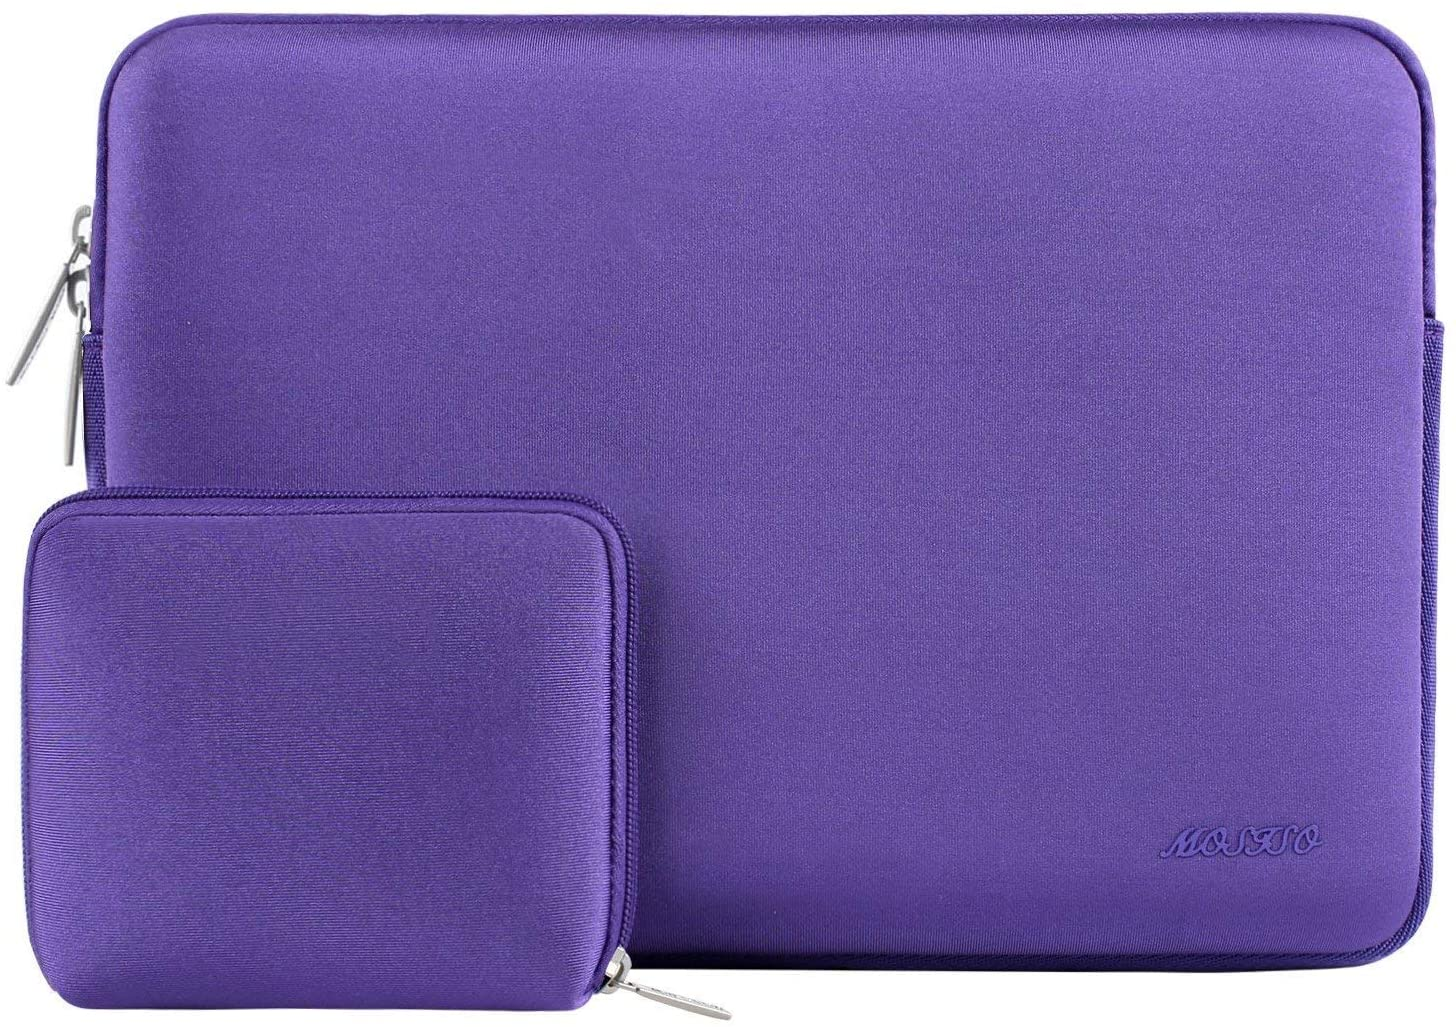 MOSISO Laptop Sleeve Only Compatible with MacBook 12 inch A1534 with Retina Display 2017/2016/2015 Release, Water Repellent Neoprene Bag with Small Case, Ultra Violet